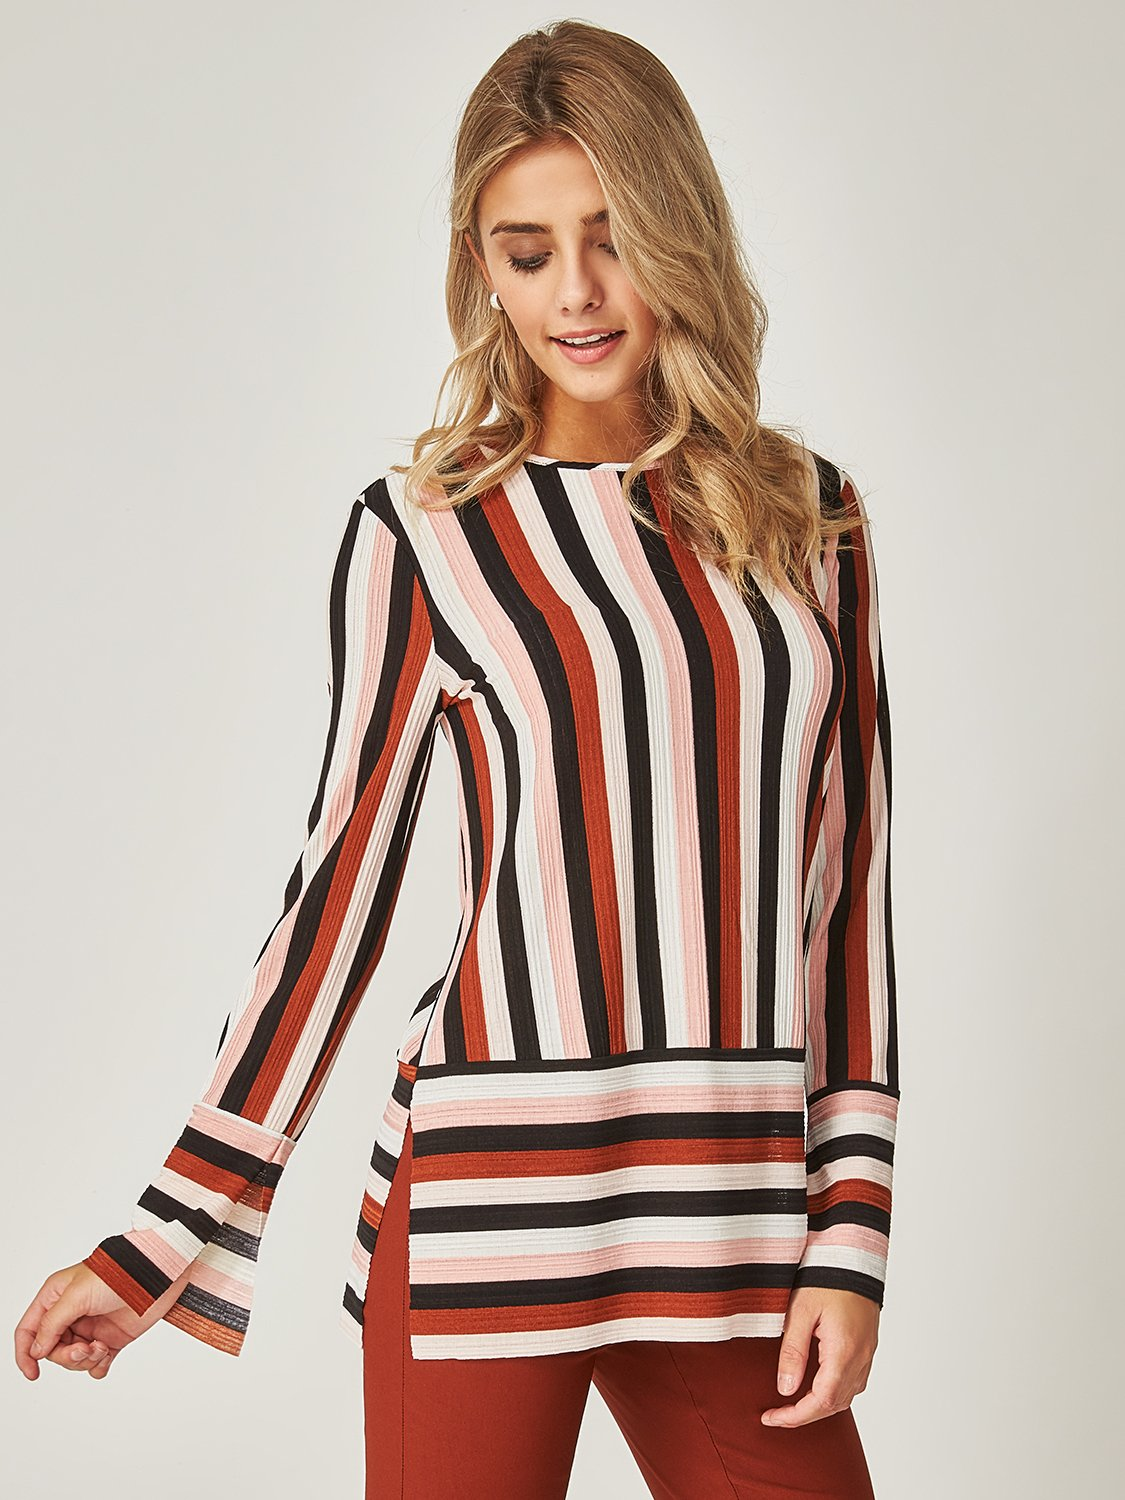 Copy of Semi-Sheer Striped Blouse